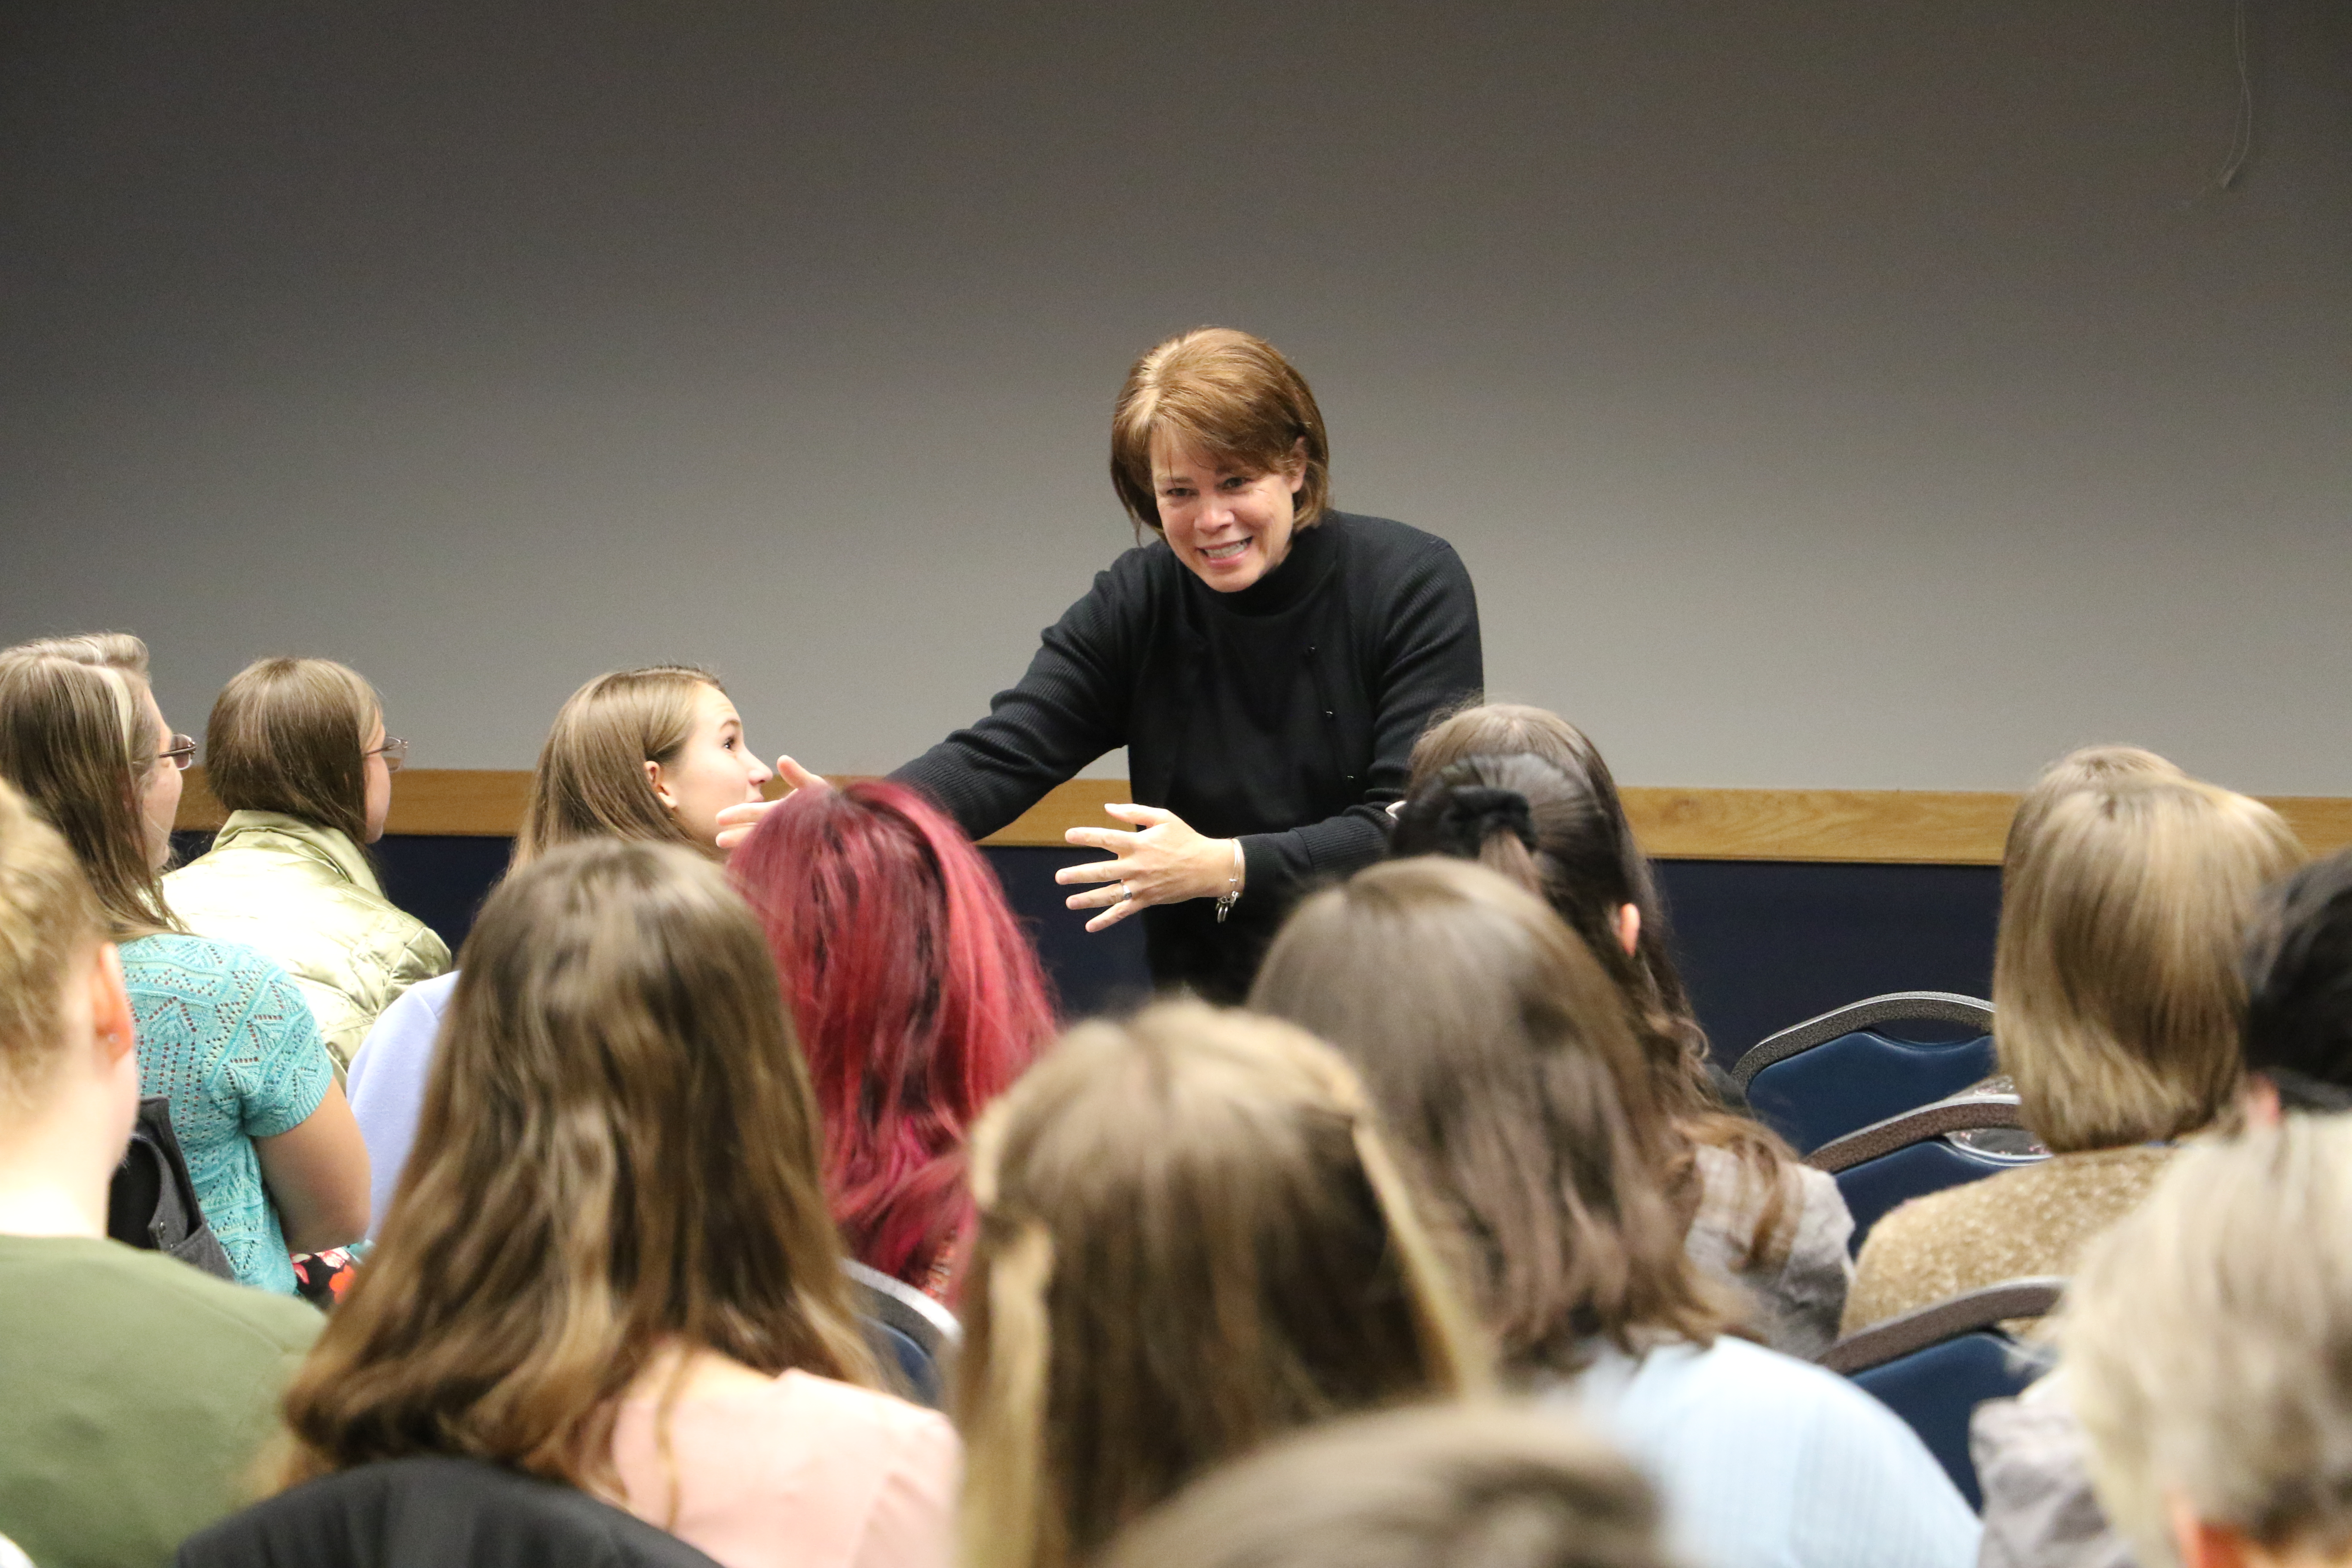 Sister Sharon Eubank speaks to a group of women representing nine stakes in young single adult and young married wards in the Logan, Utah, area prior to a devotional at the Dee Glen Smith Spectrum at Utah State University on Sunday, Nov. 3, 2019.